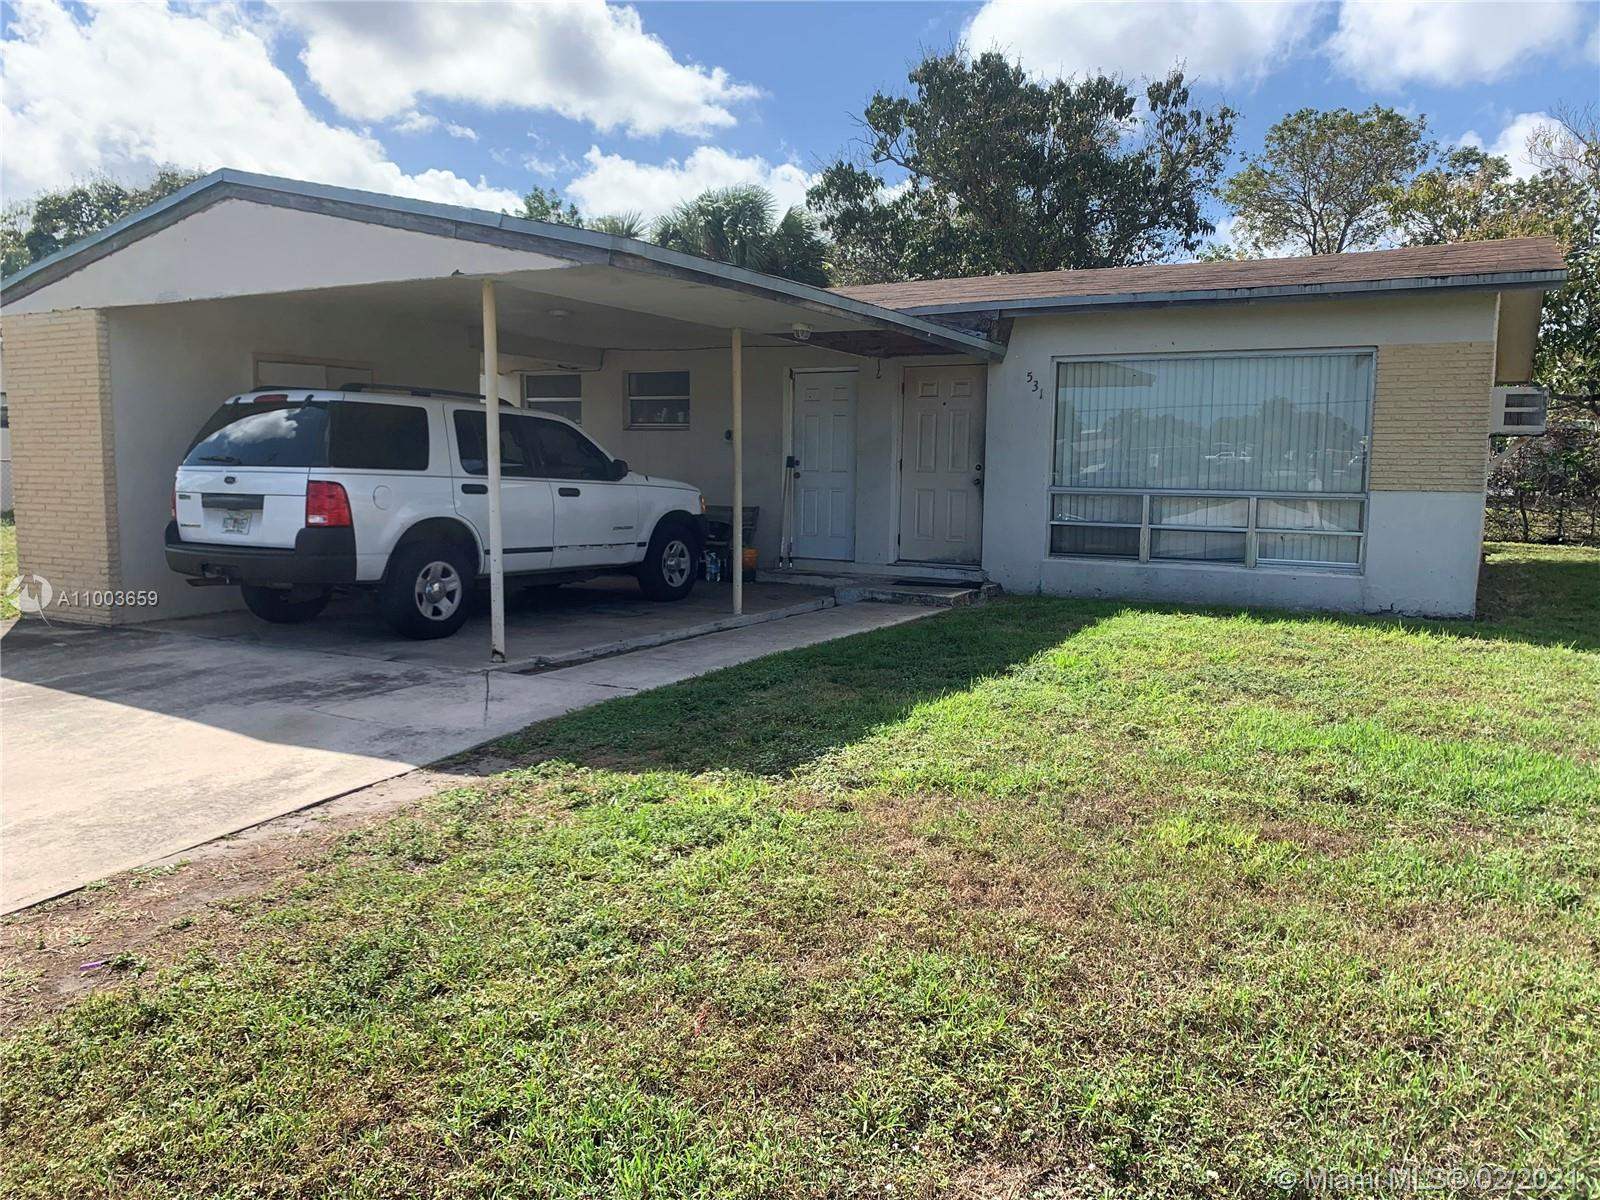 Unapproved Short Sale Property needs complete renovation. Needs roofing, flooring, kitchen and bathroom.  PLEASE Do NOT disturb occupants! All information is deemed accurate but not guaranteed. Sale is contingent on Third Party Approval.